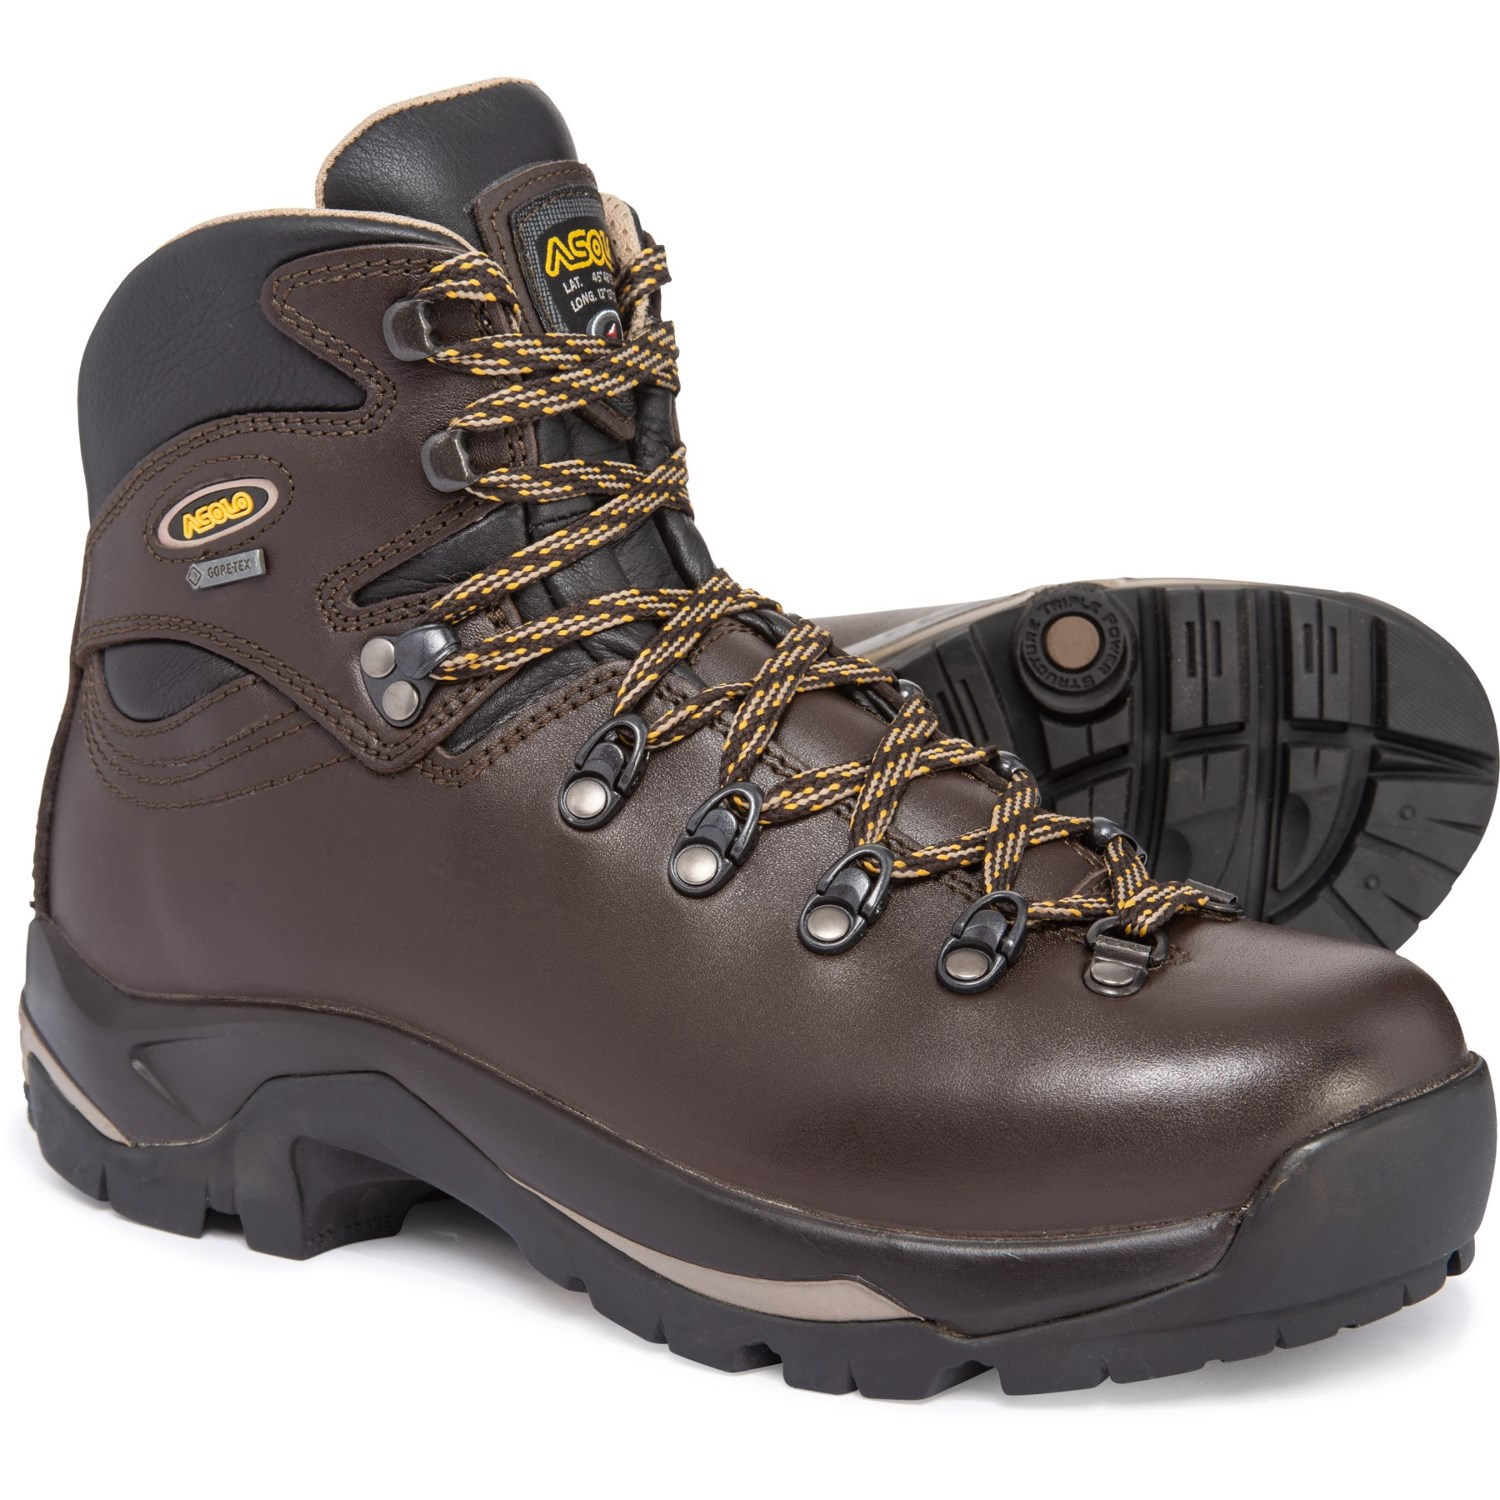 bcc0fb696a0 Asolo TPS 520 GV Gore-Tex® Hiking Boots (For Women) - Save 54%